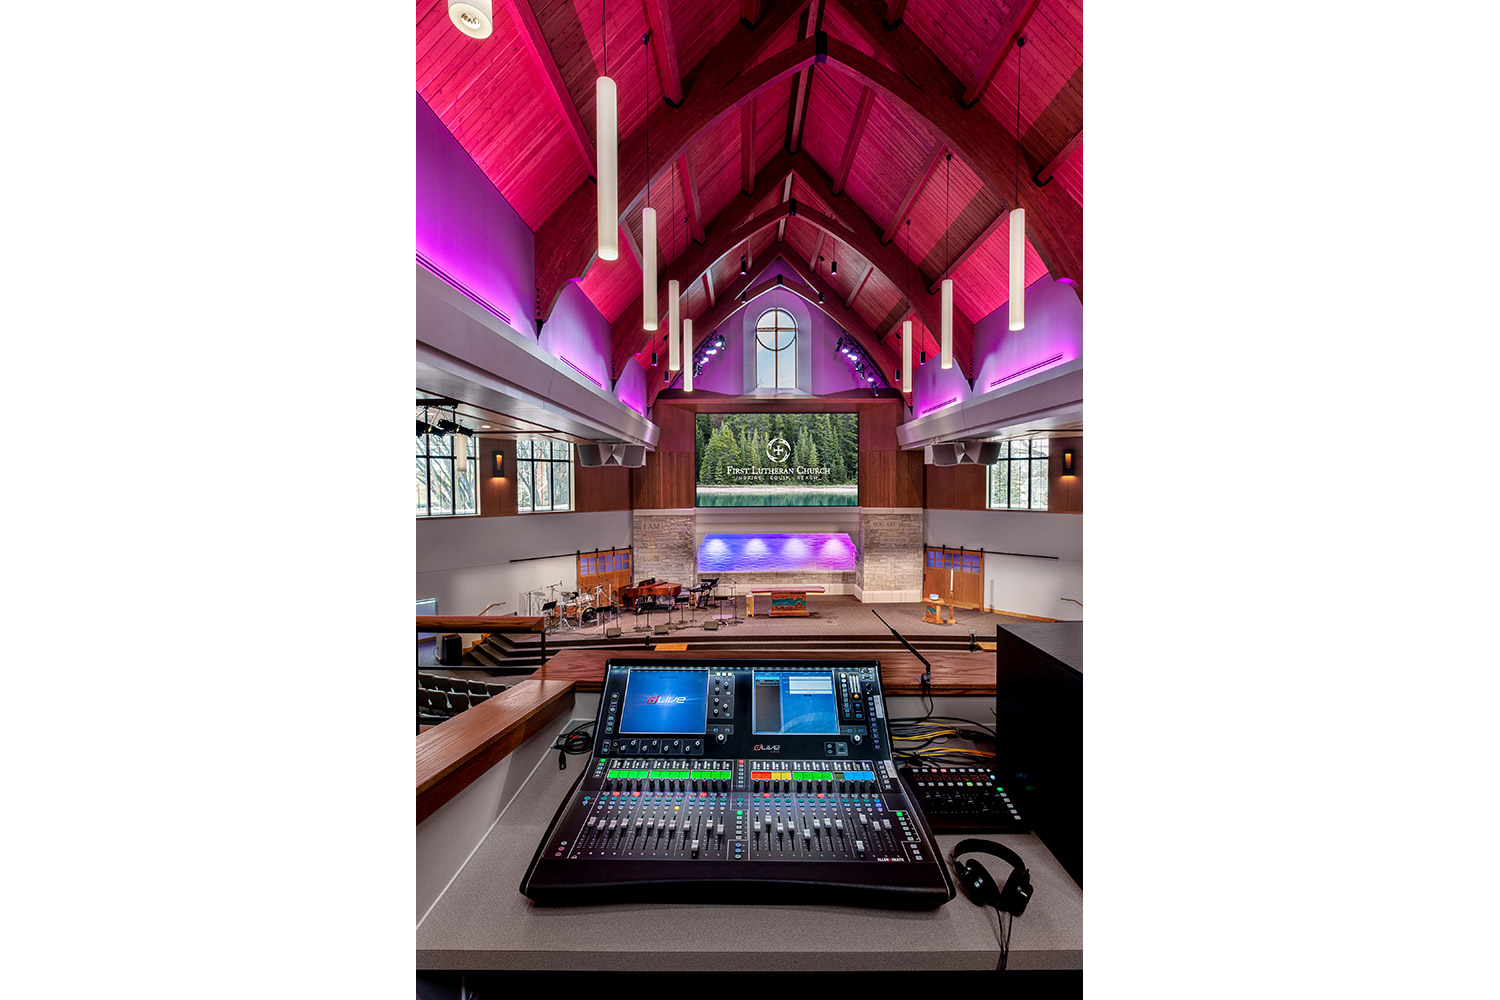 Live mixing console view, AV Systems integration by WSDG. Church in Fargo, ND.